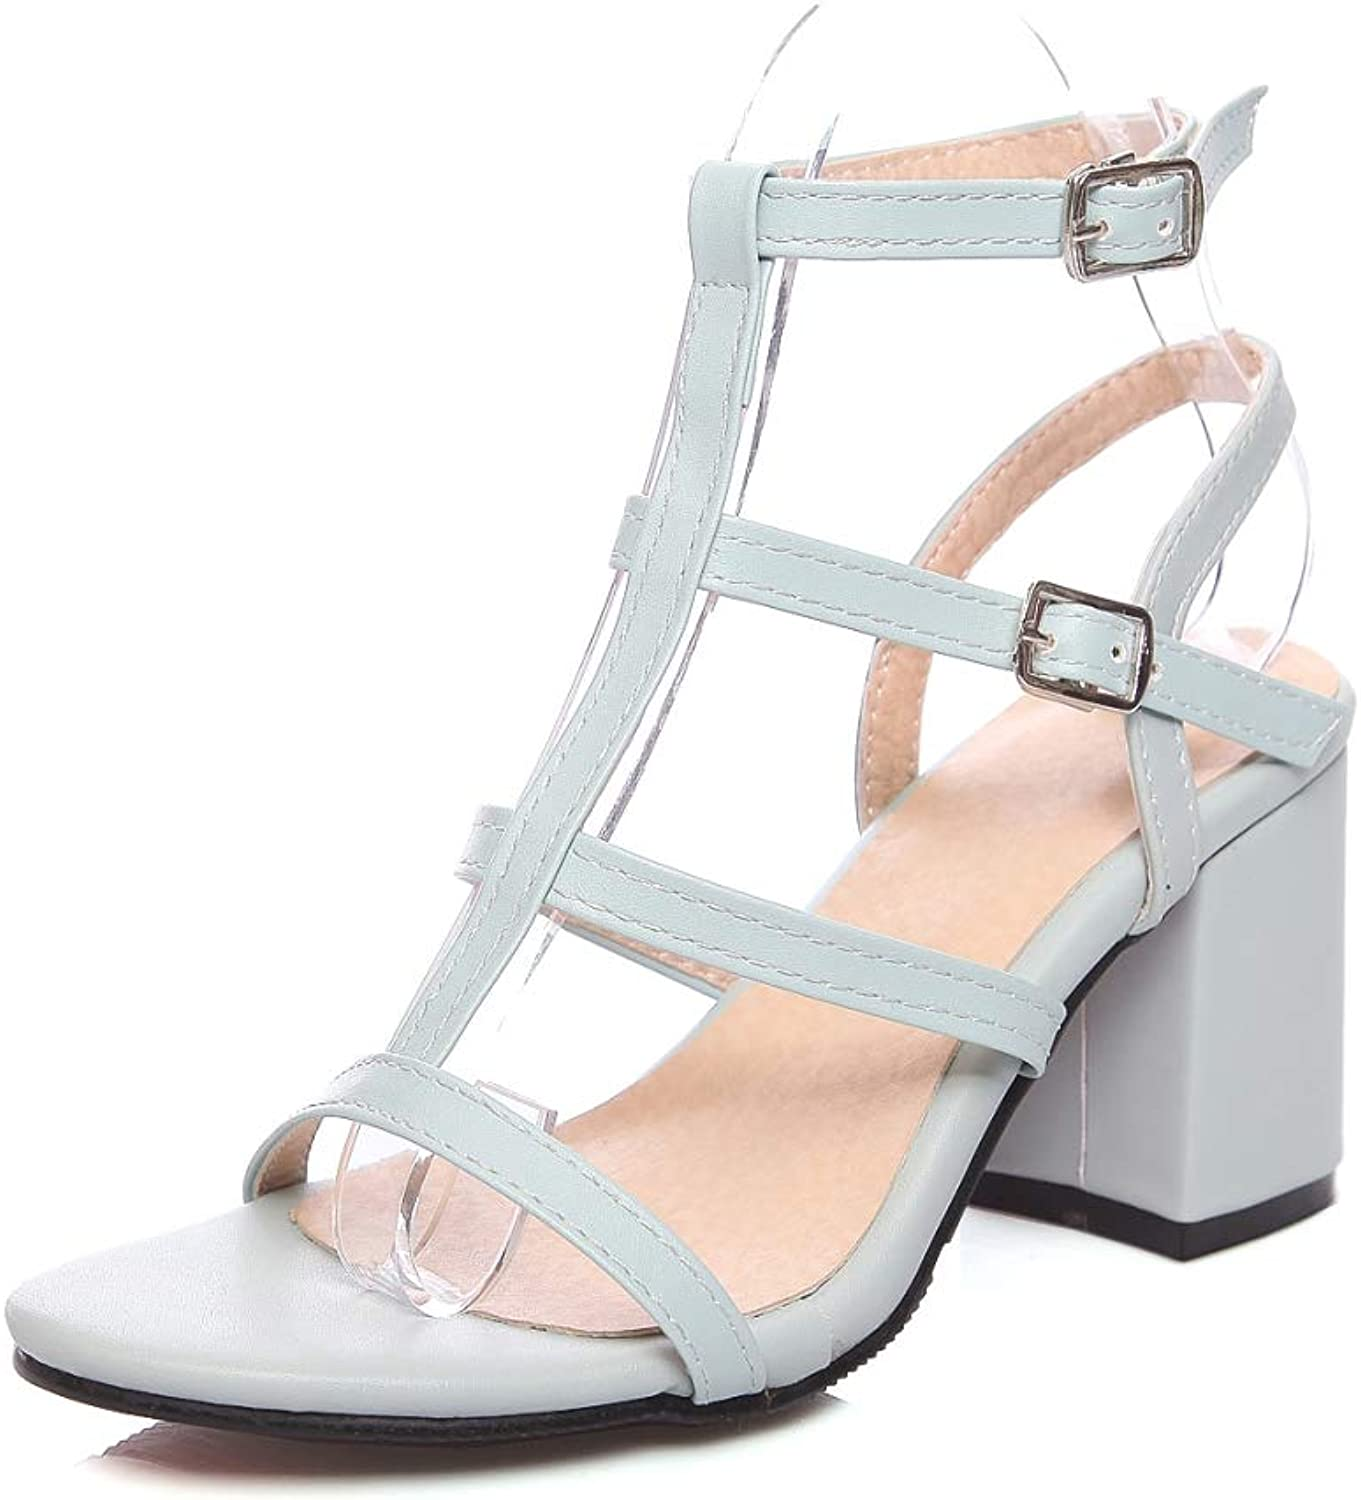 MEIZOKEN Women's Strappy Chunky Block Sandals Ankle Strap Open Toe Cutout High Heel Gladiator Sandals